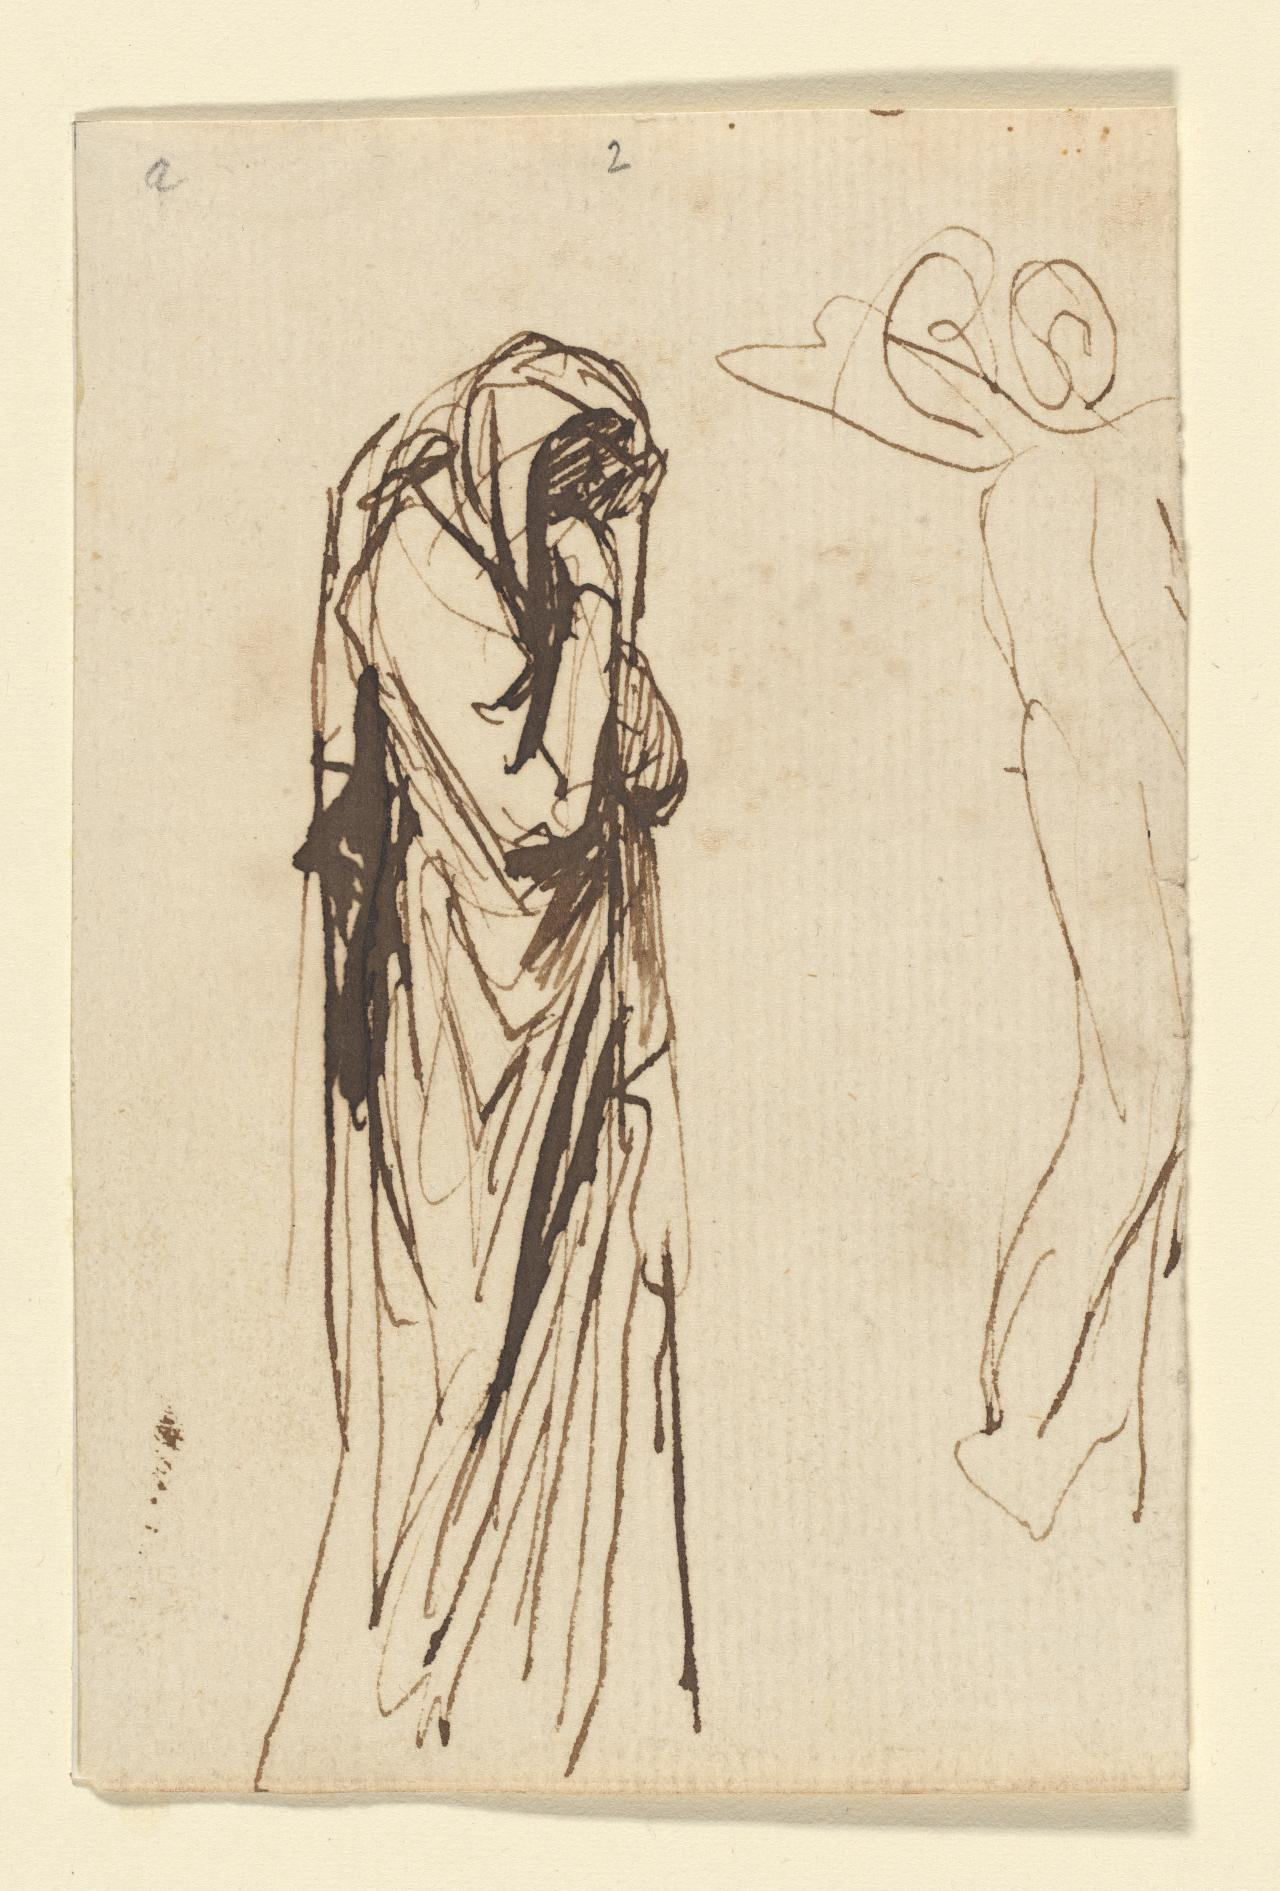 Study of hooded figure with hands to face